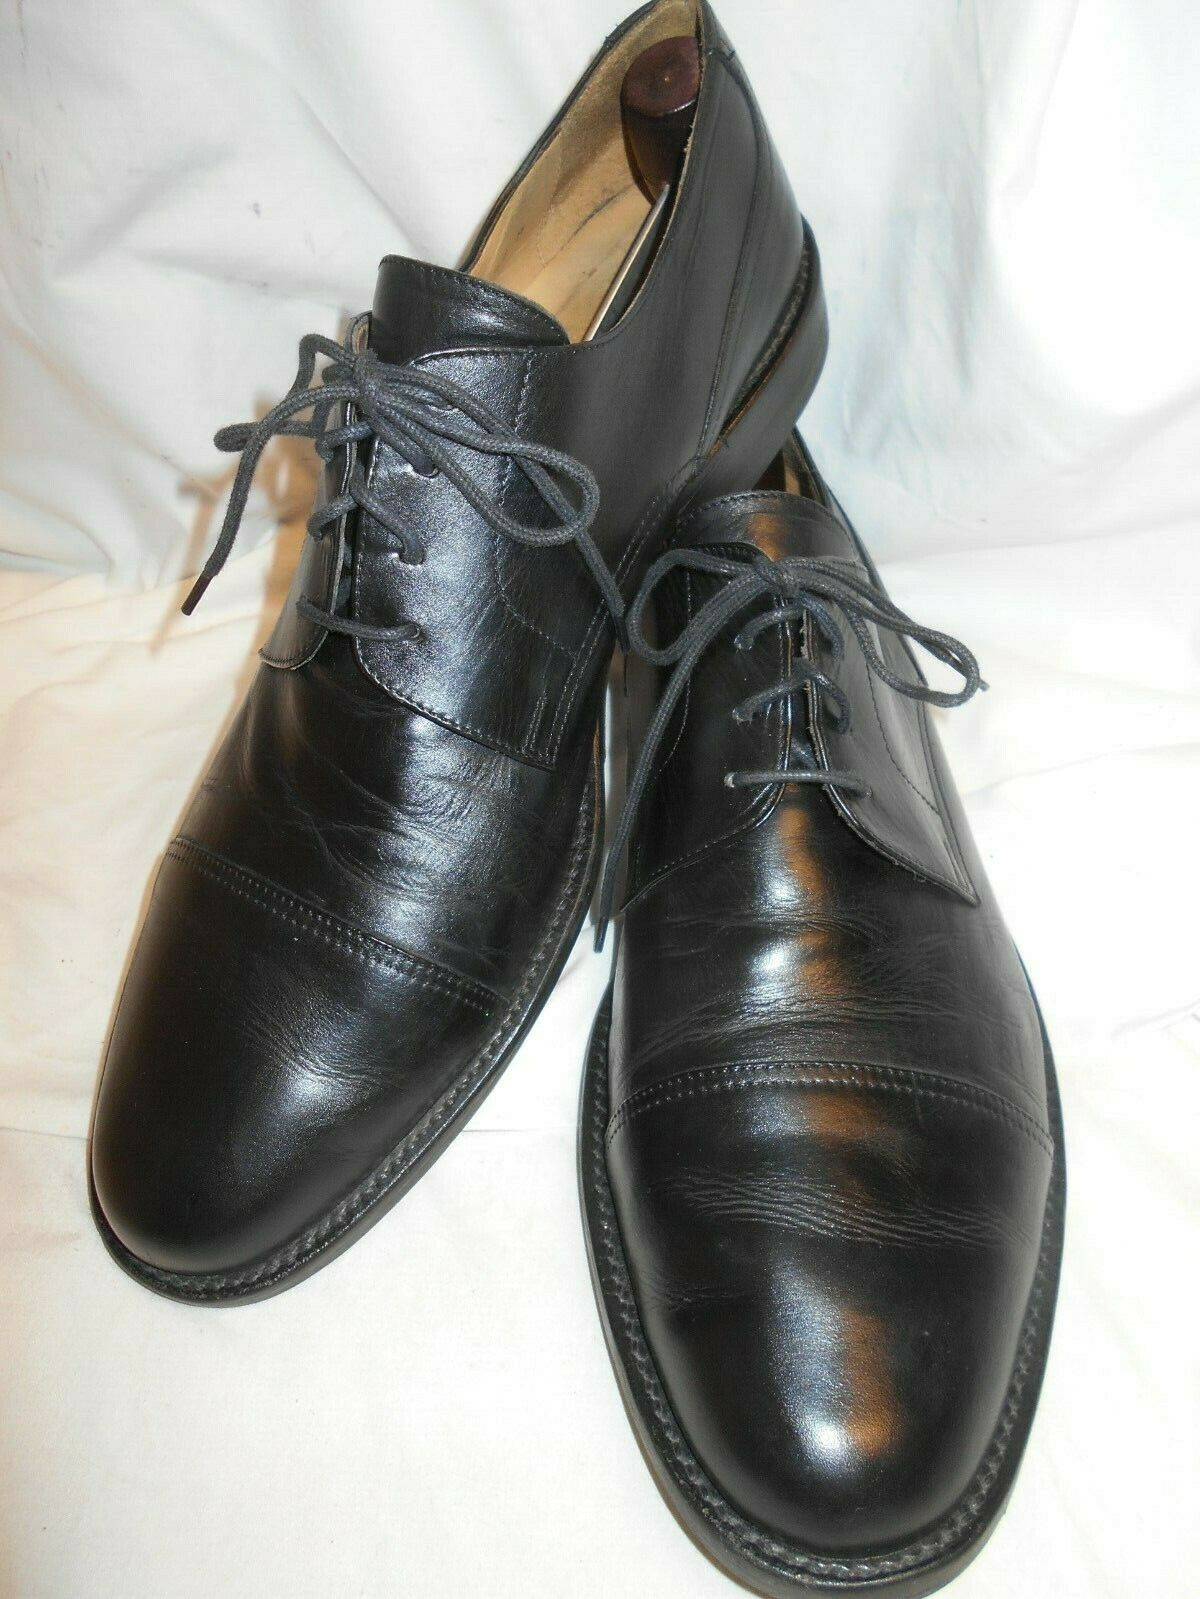 Excellent Johnston&Murphy Men's Black Leather Cap Toe Oxfords Made In Italy 12M